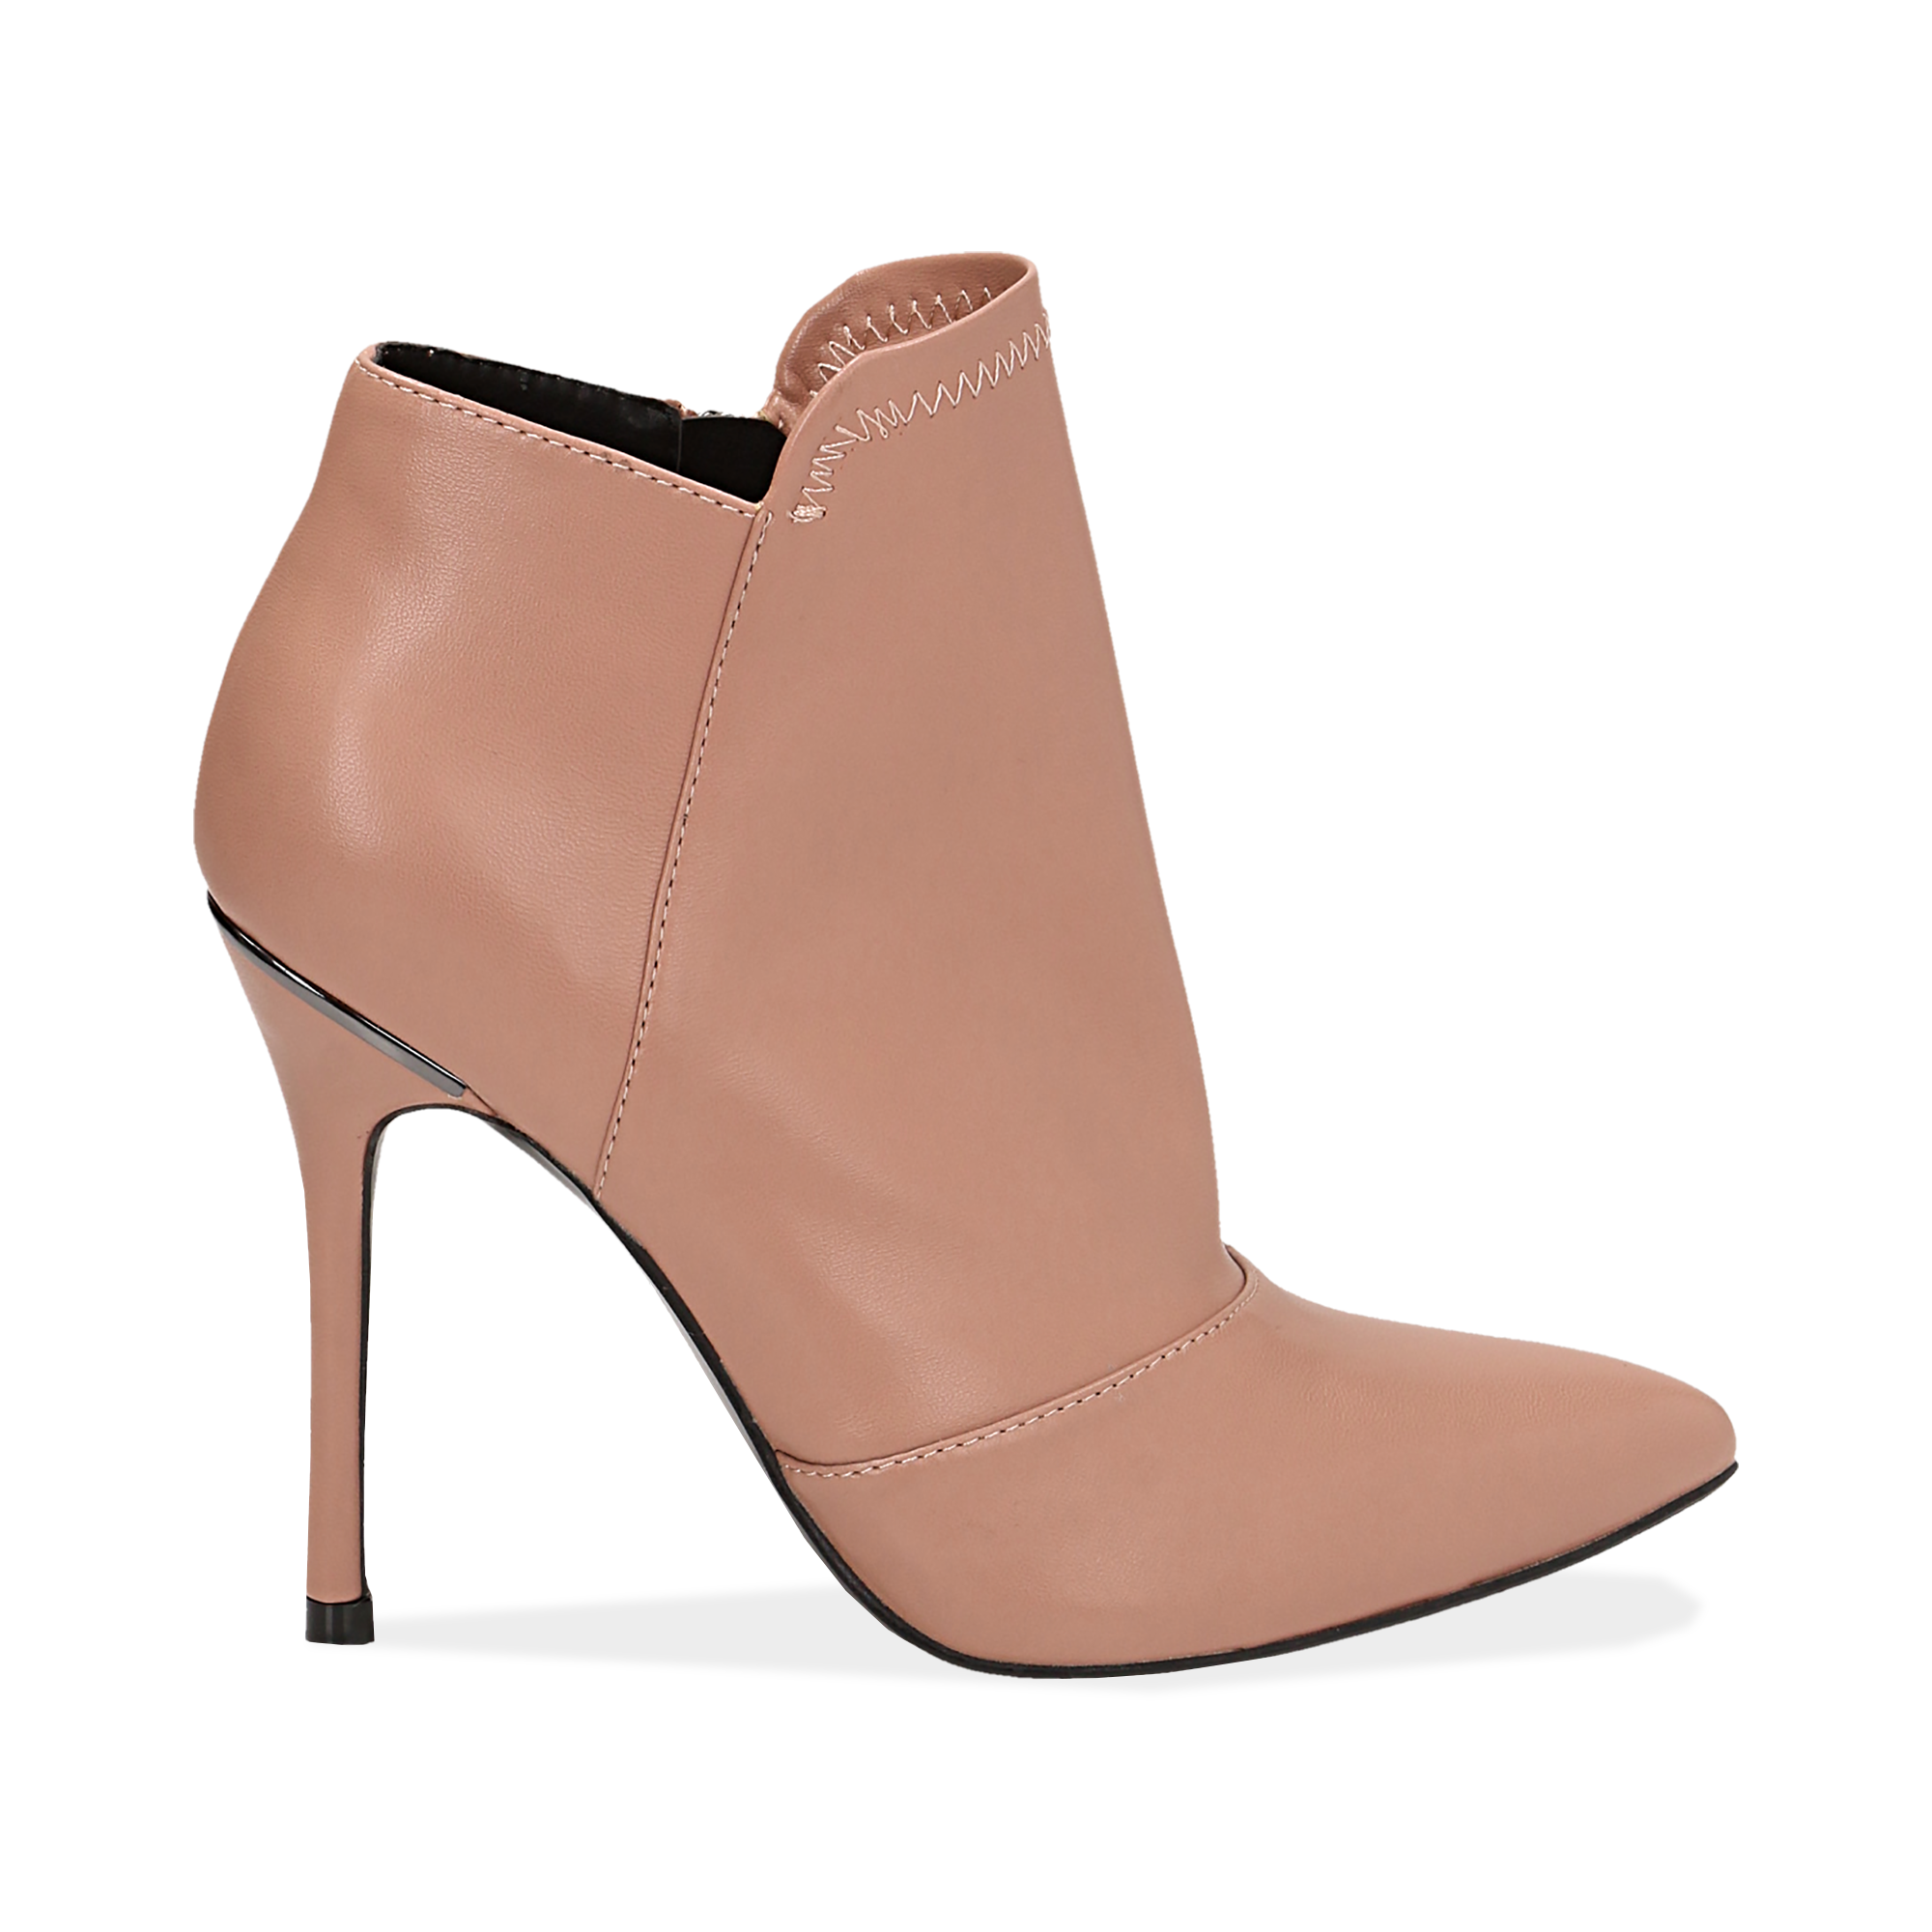 Ankle boots nude in eco-pelle, tacco 10, 50 cm